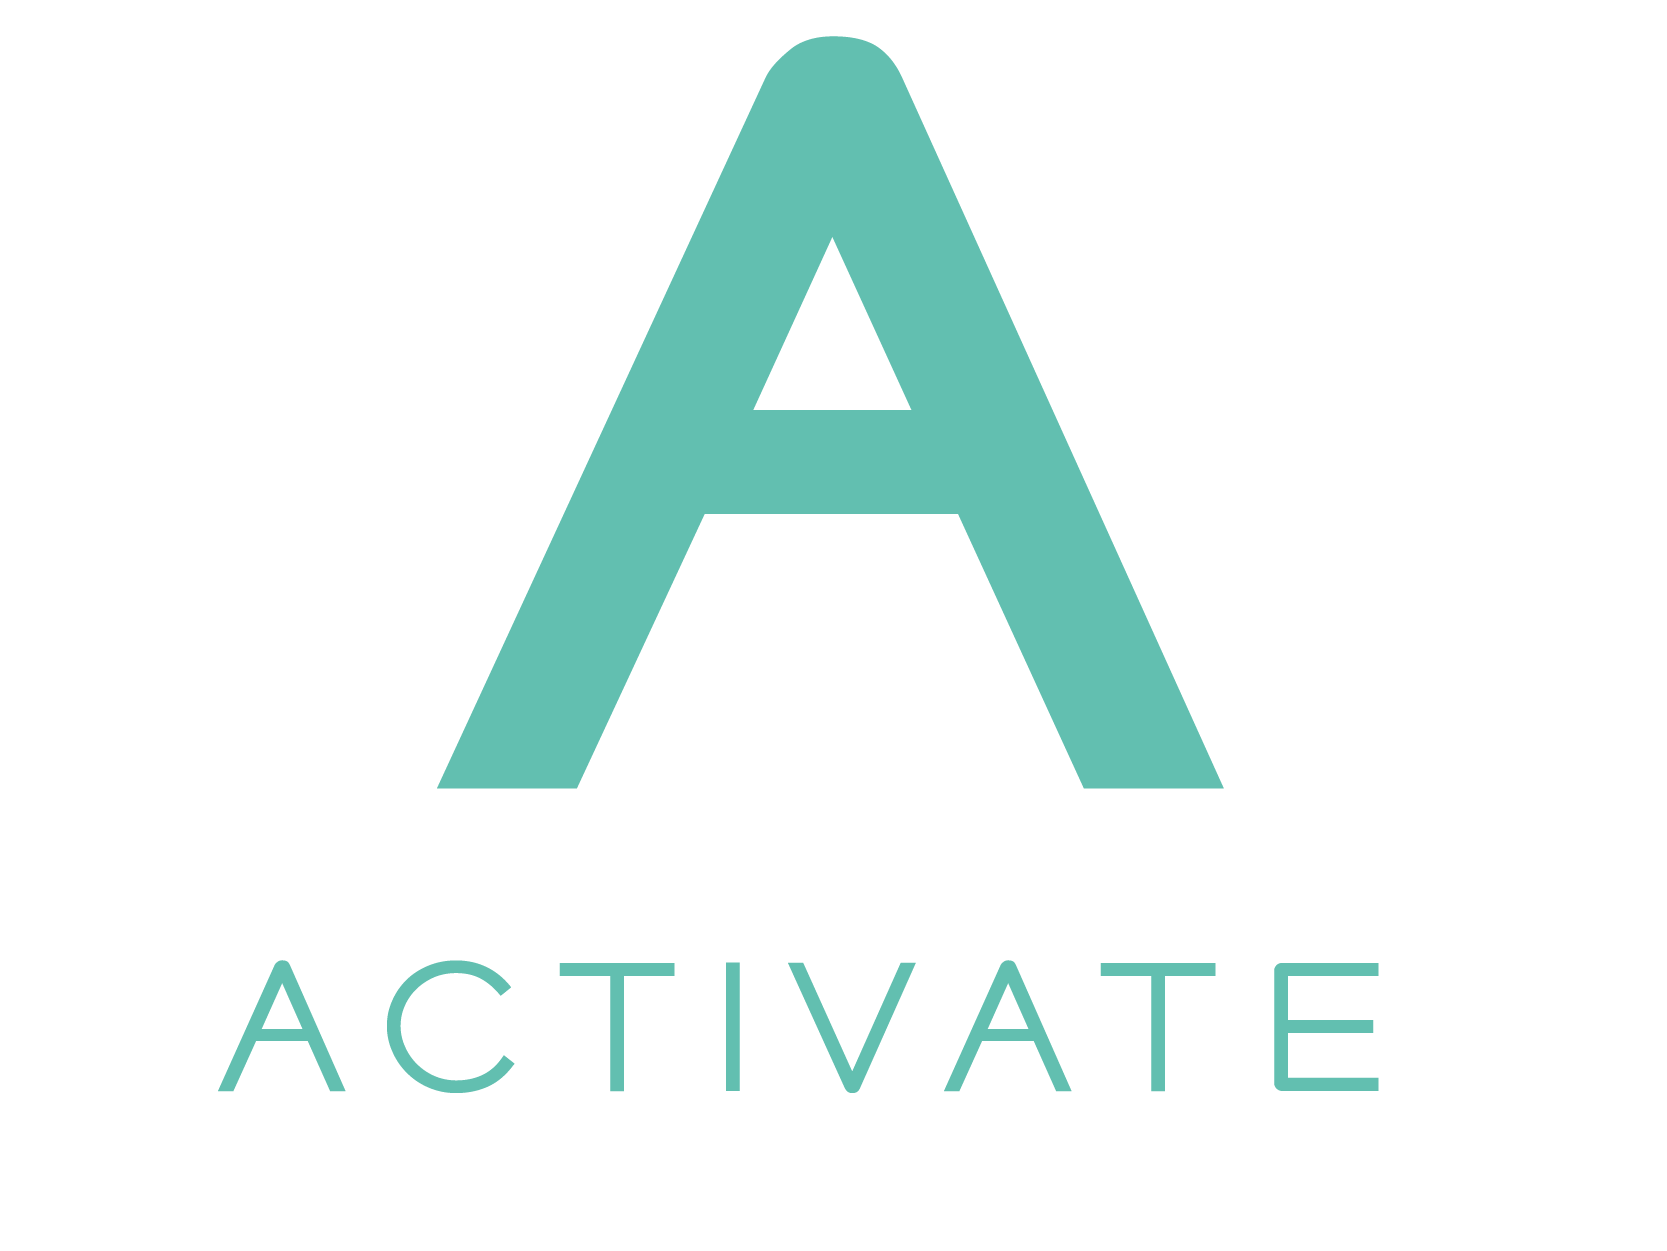 Activate your brand